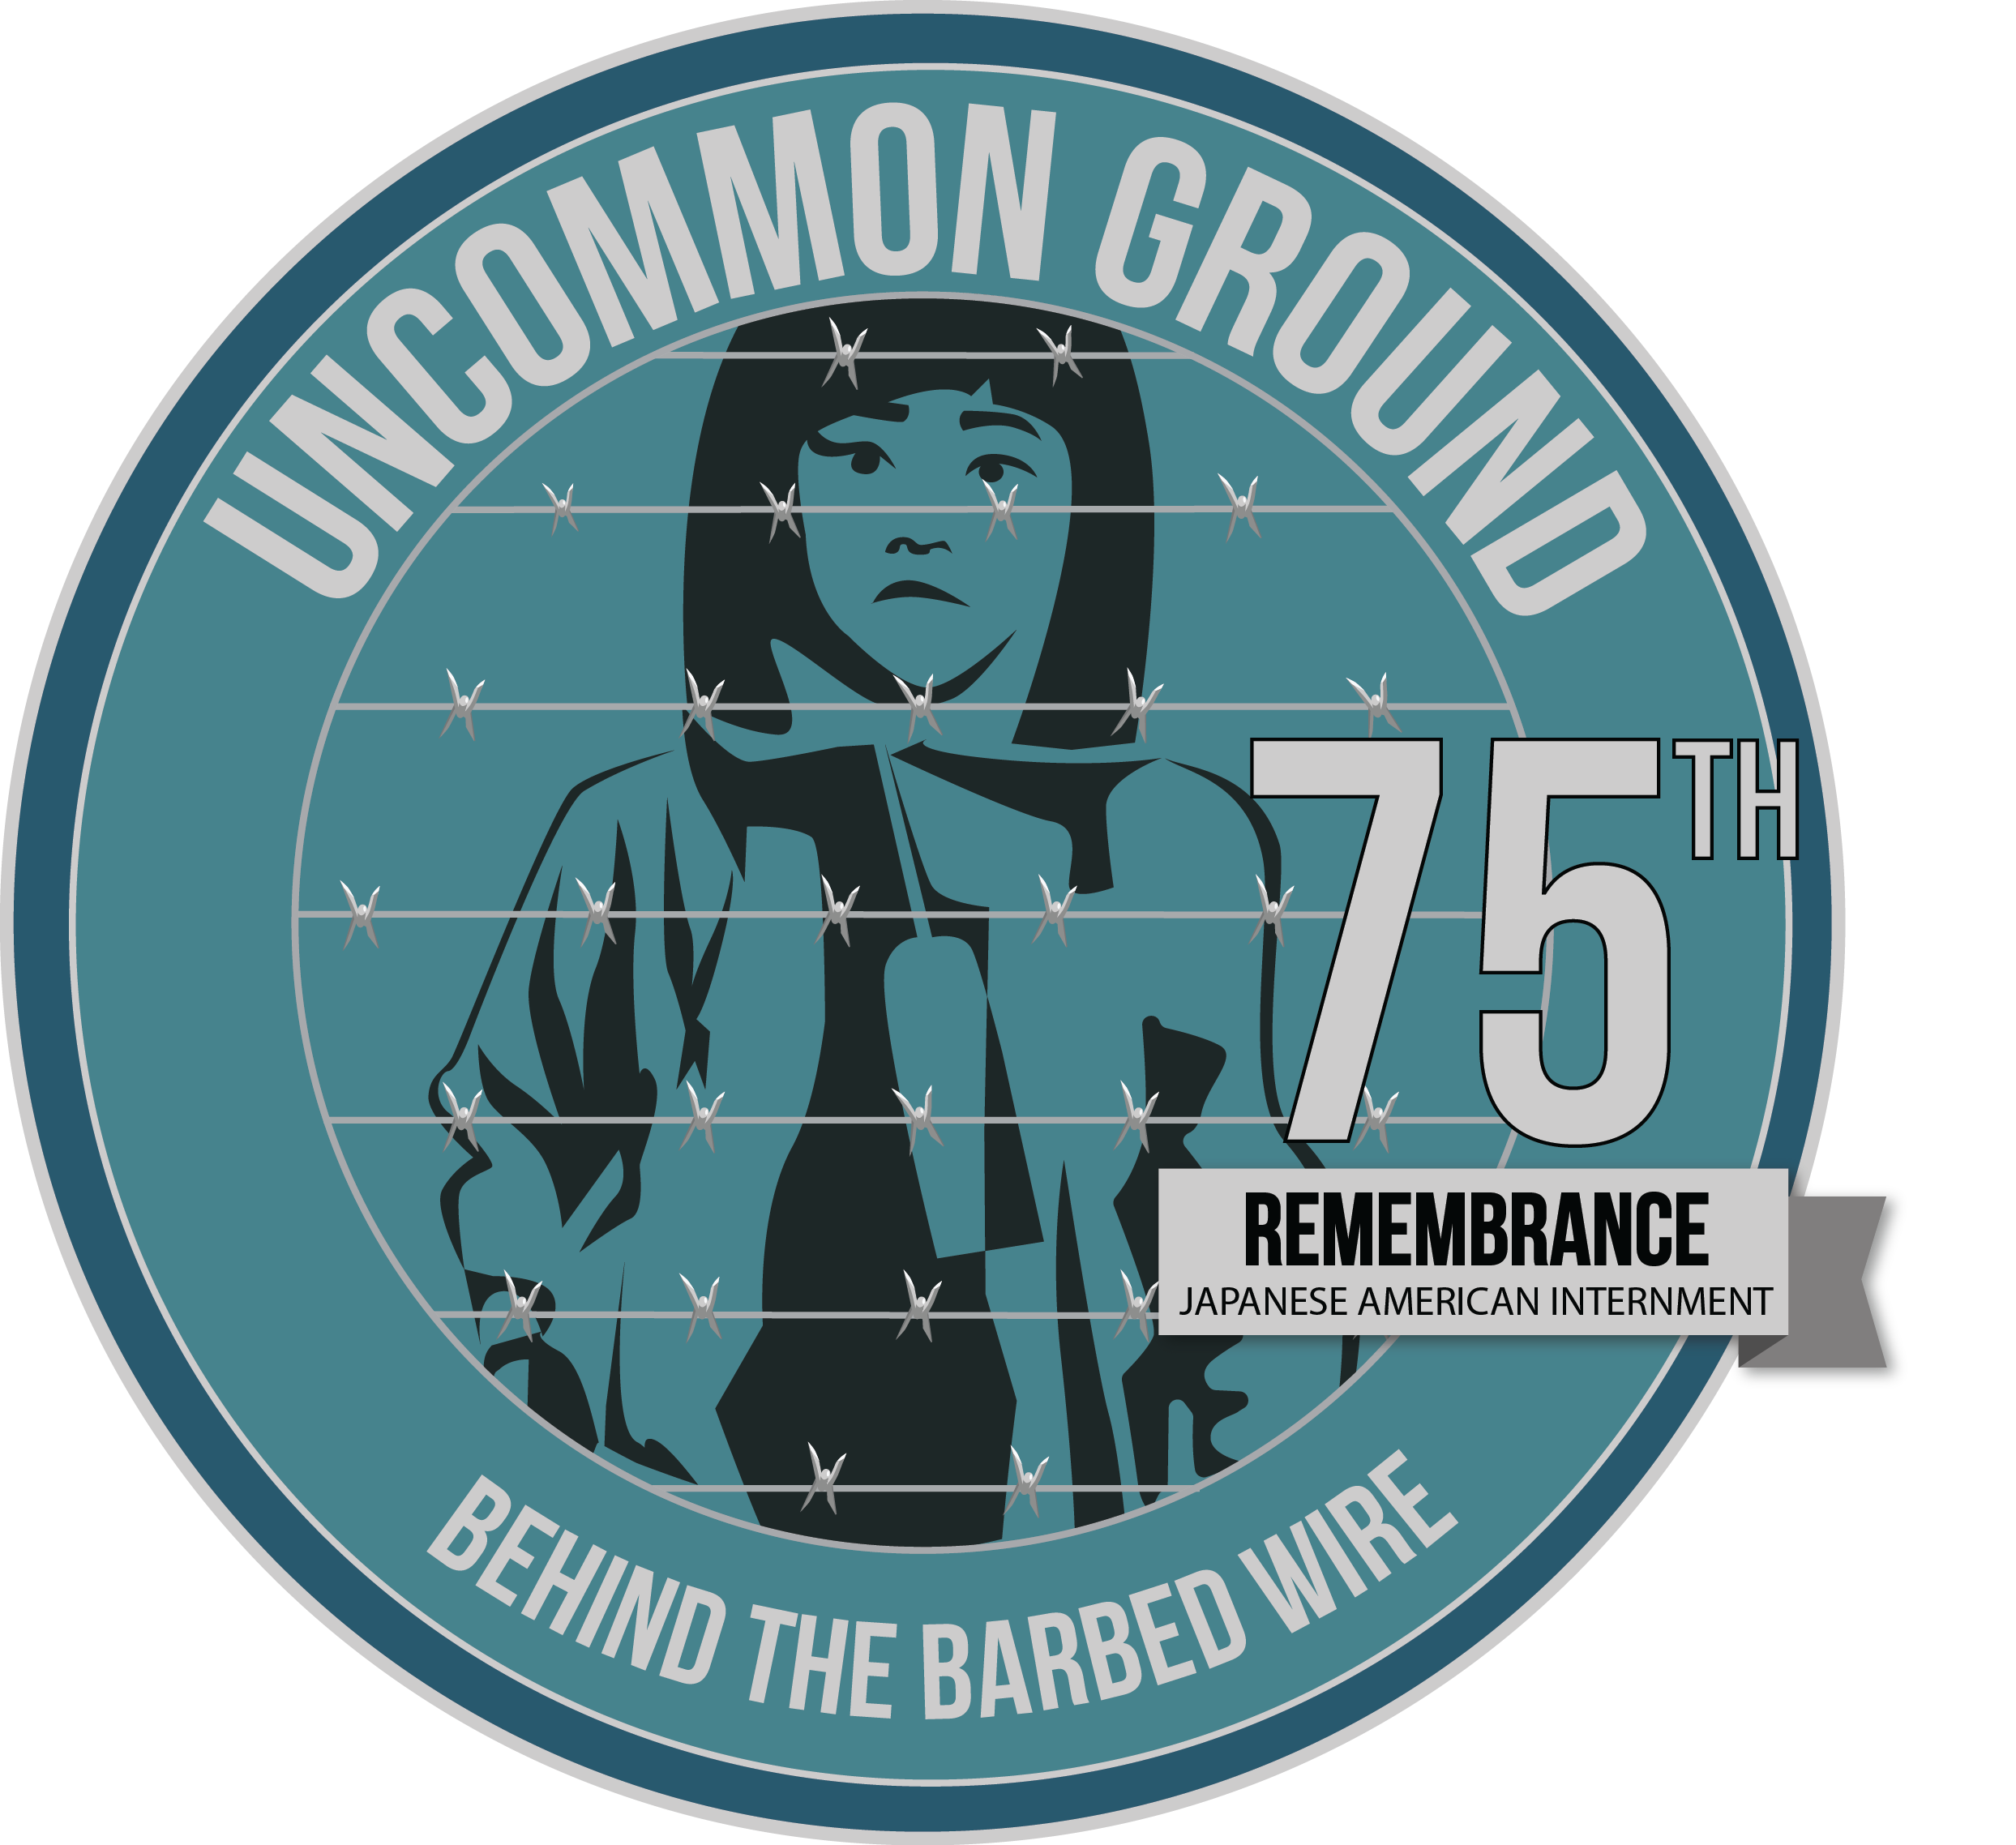 Logo for Exhibit - Uncommon Ground: Behind the Barbed Wire. 75th anniversary of Japanese American Internment.